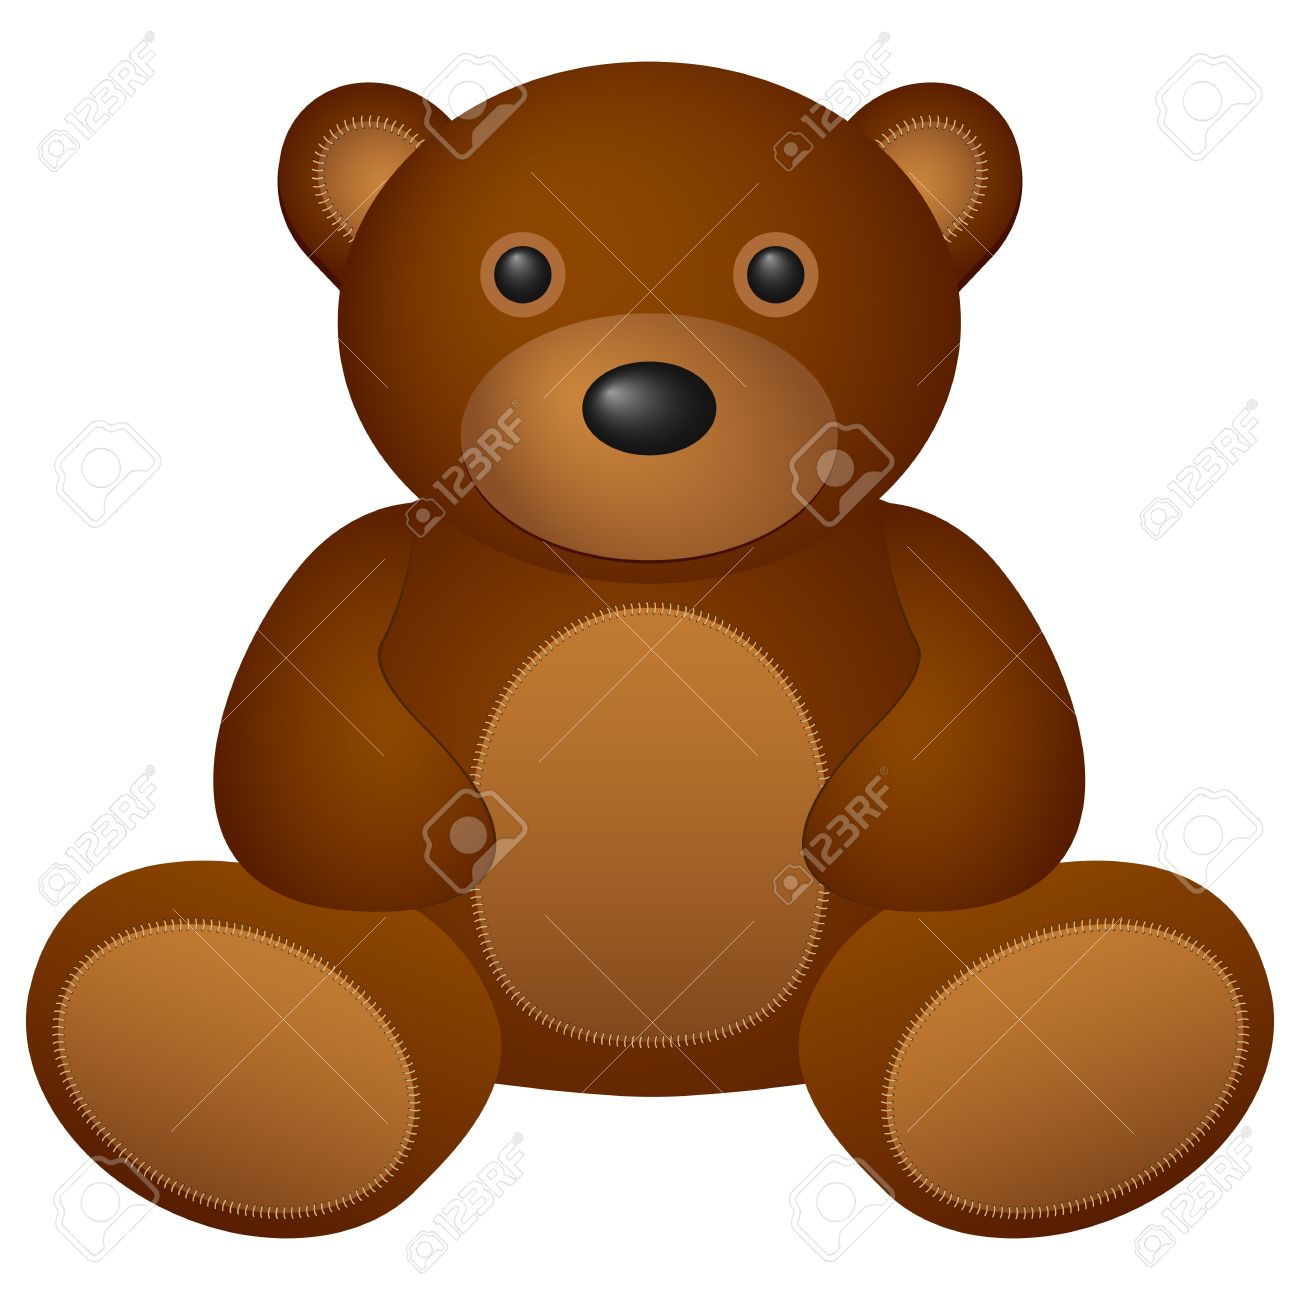 Teddy bear toy on a white background  Vector illustration Stock Vector - 14161950